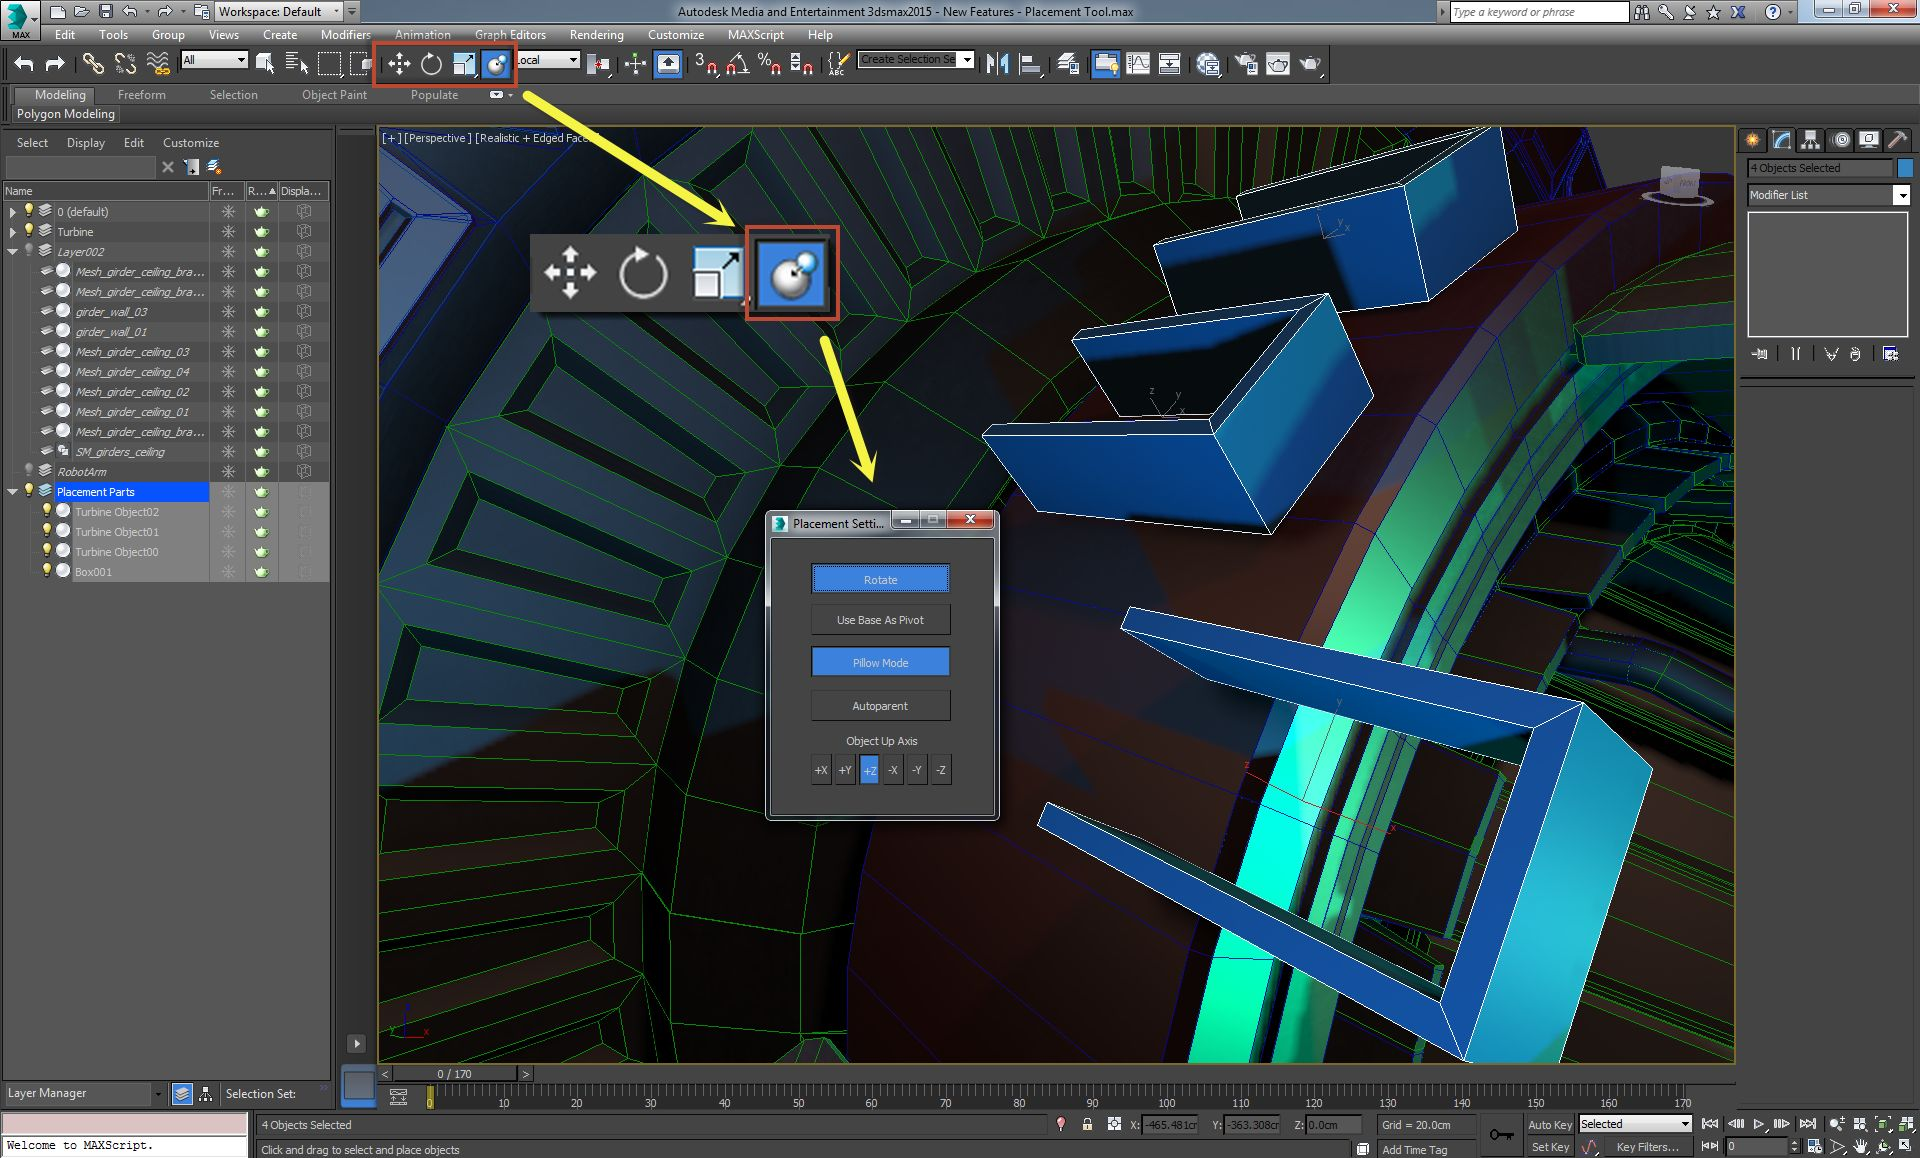 Autodesk Announces 2015 3D Animation Software 36